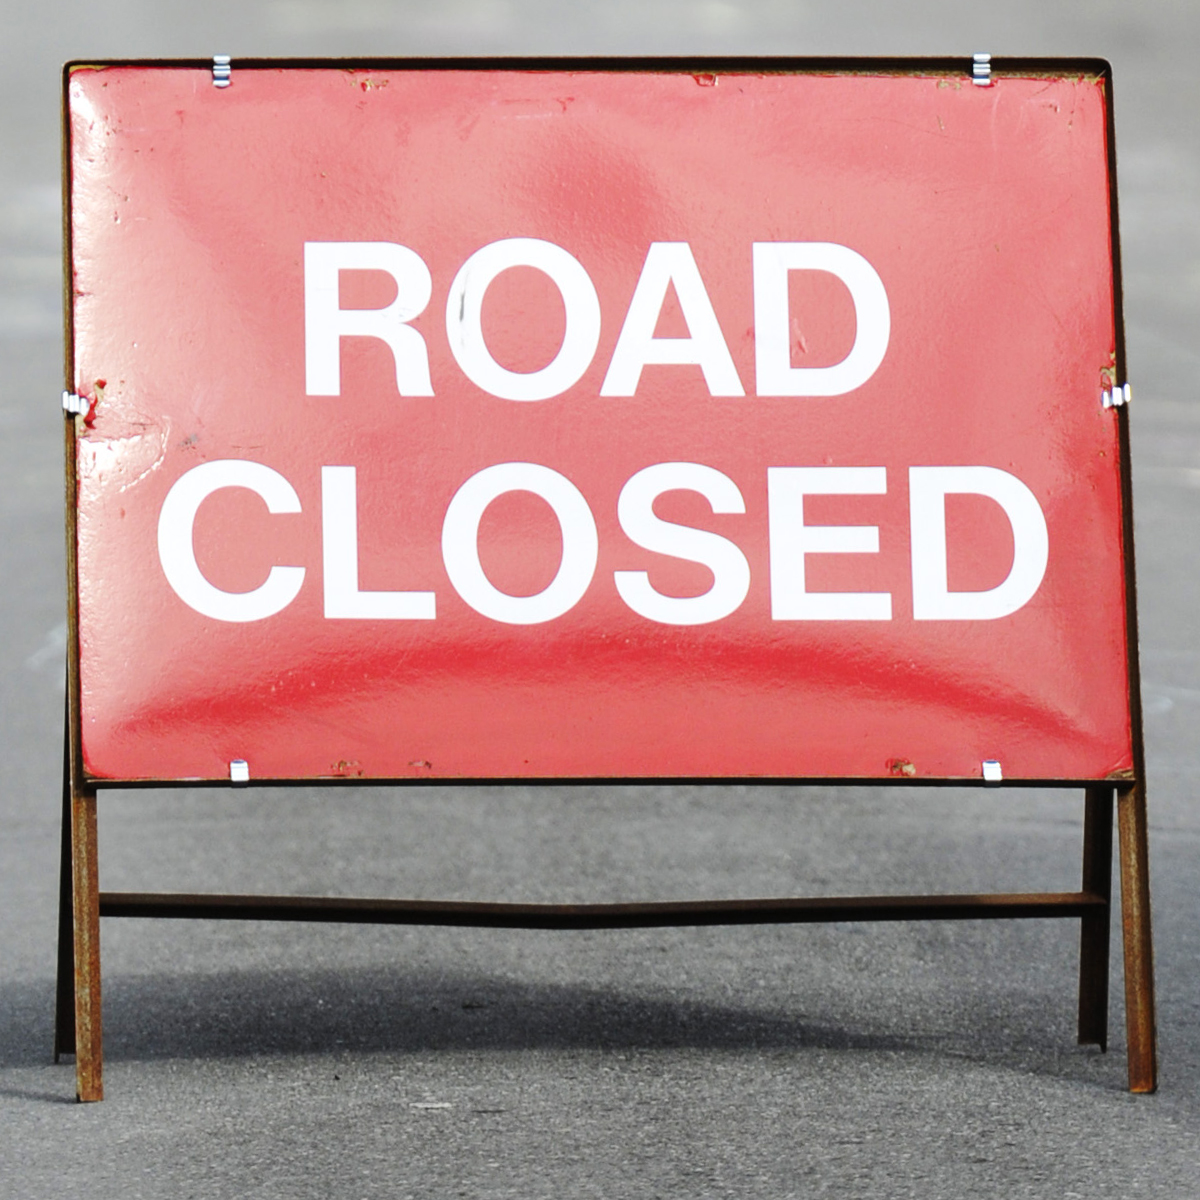 Parliament Street in Stroud to close for one day